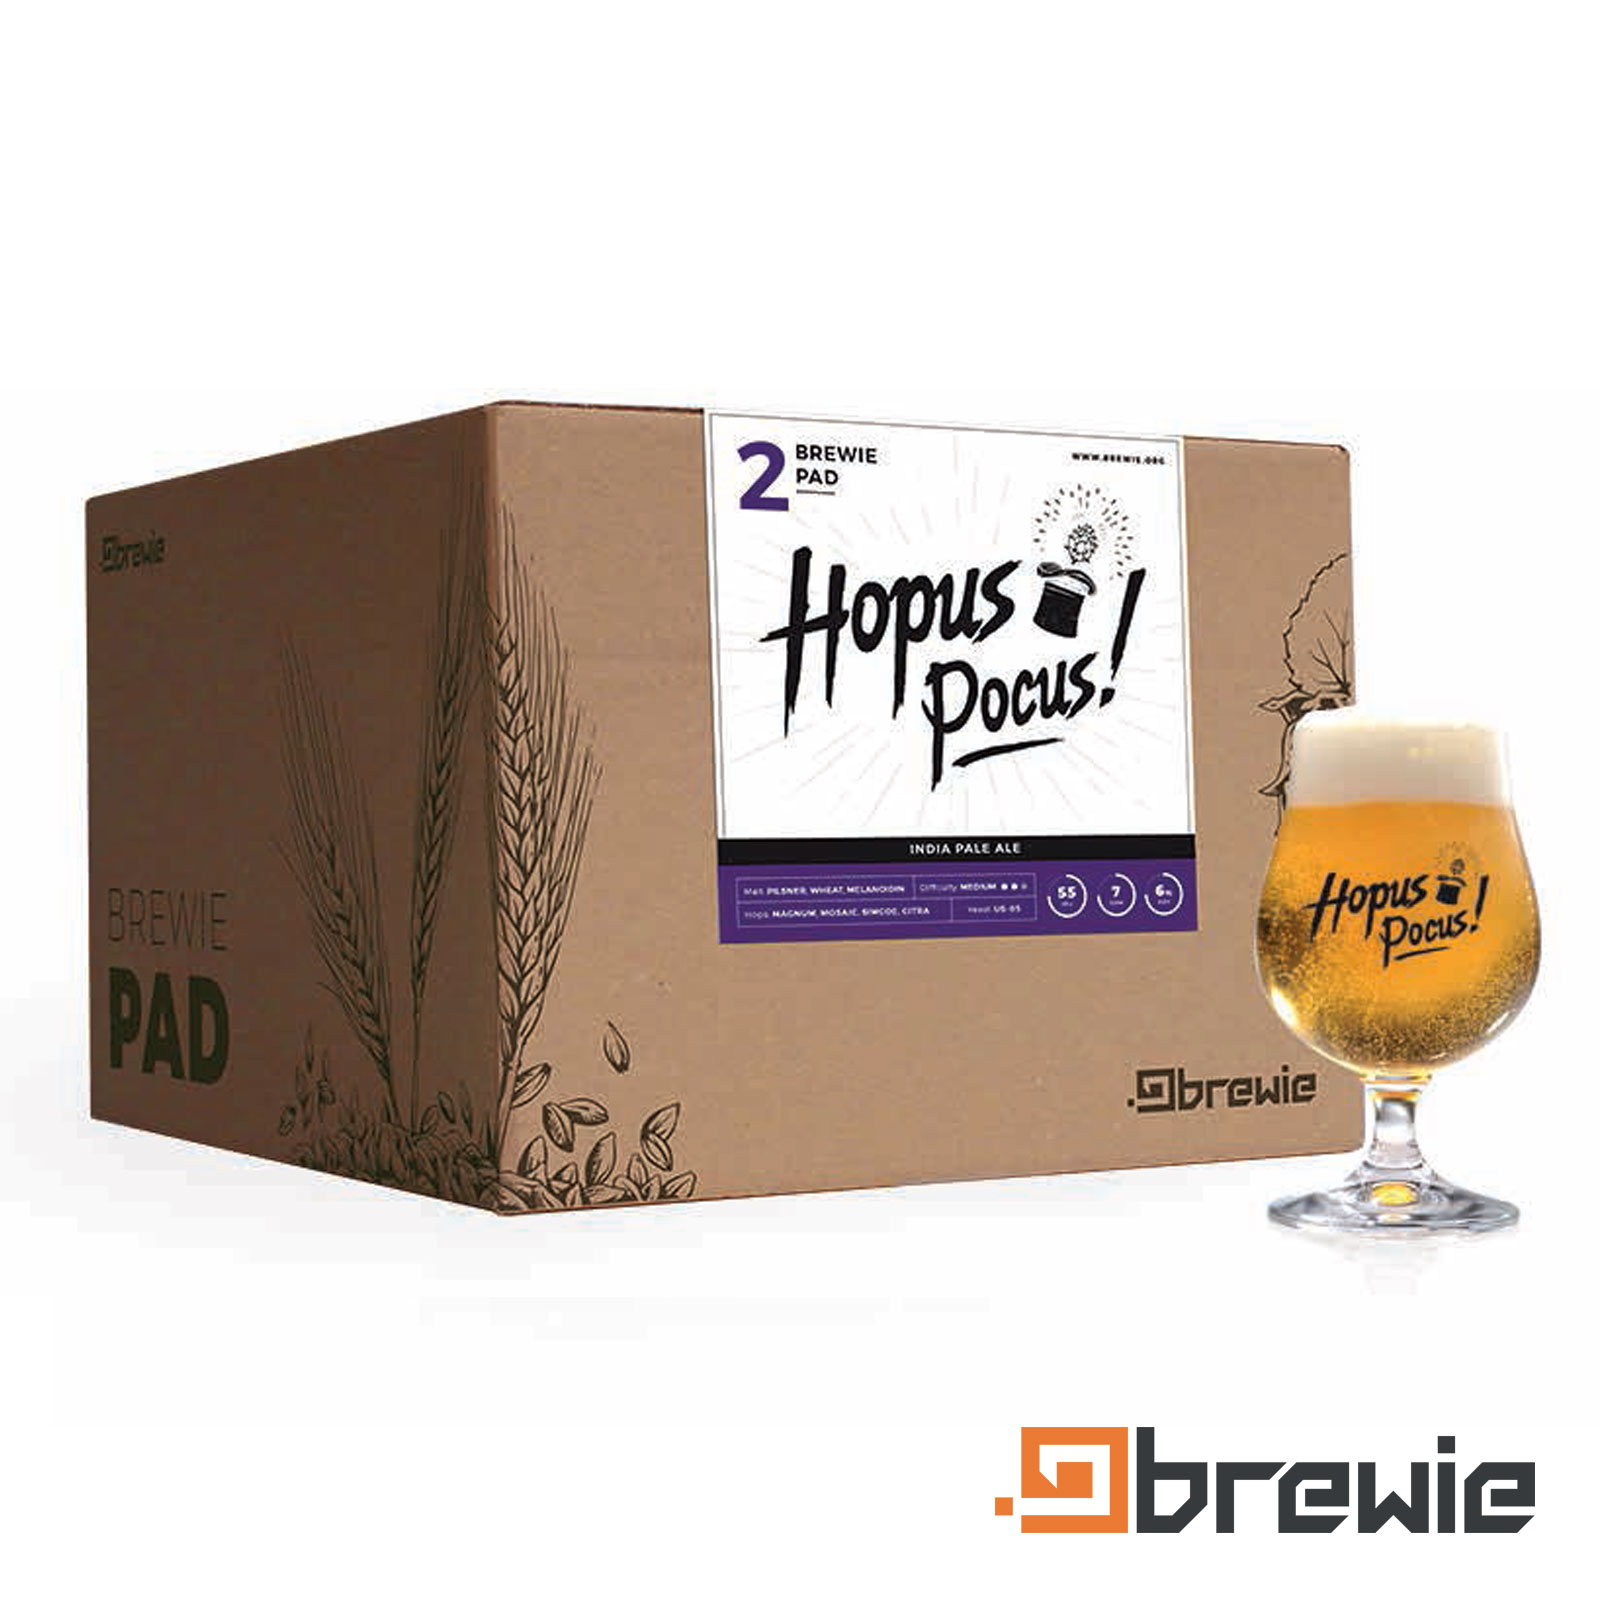 Kit All grain Brewie Hopus Pocus Pale Ale